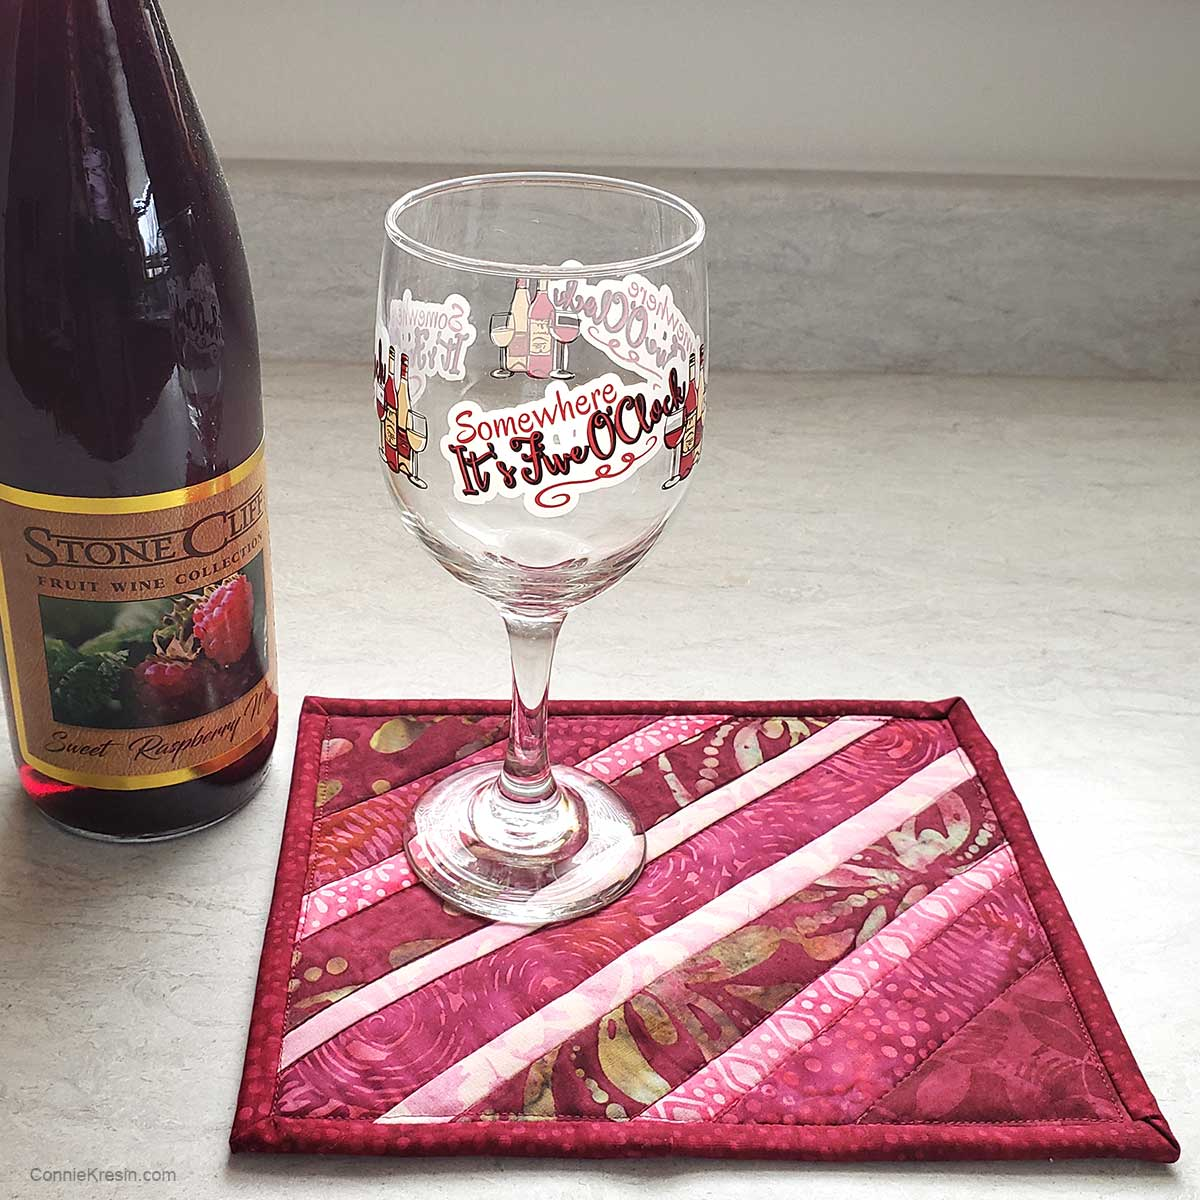 Mug rug with a wine glass and bottle of wine